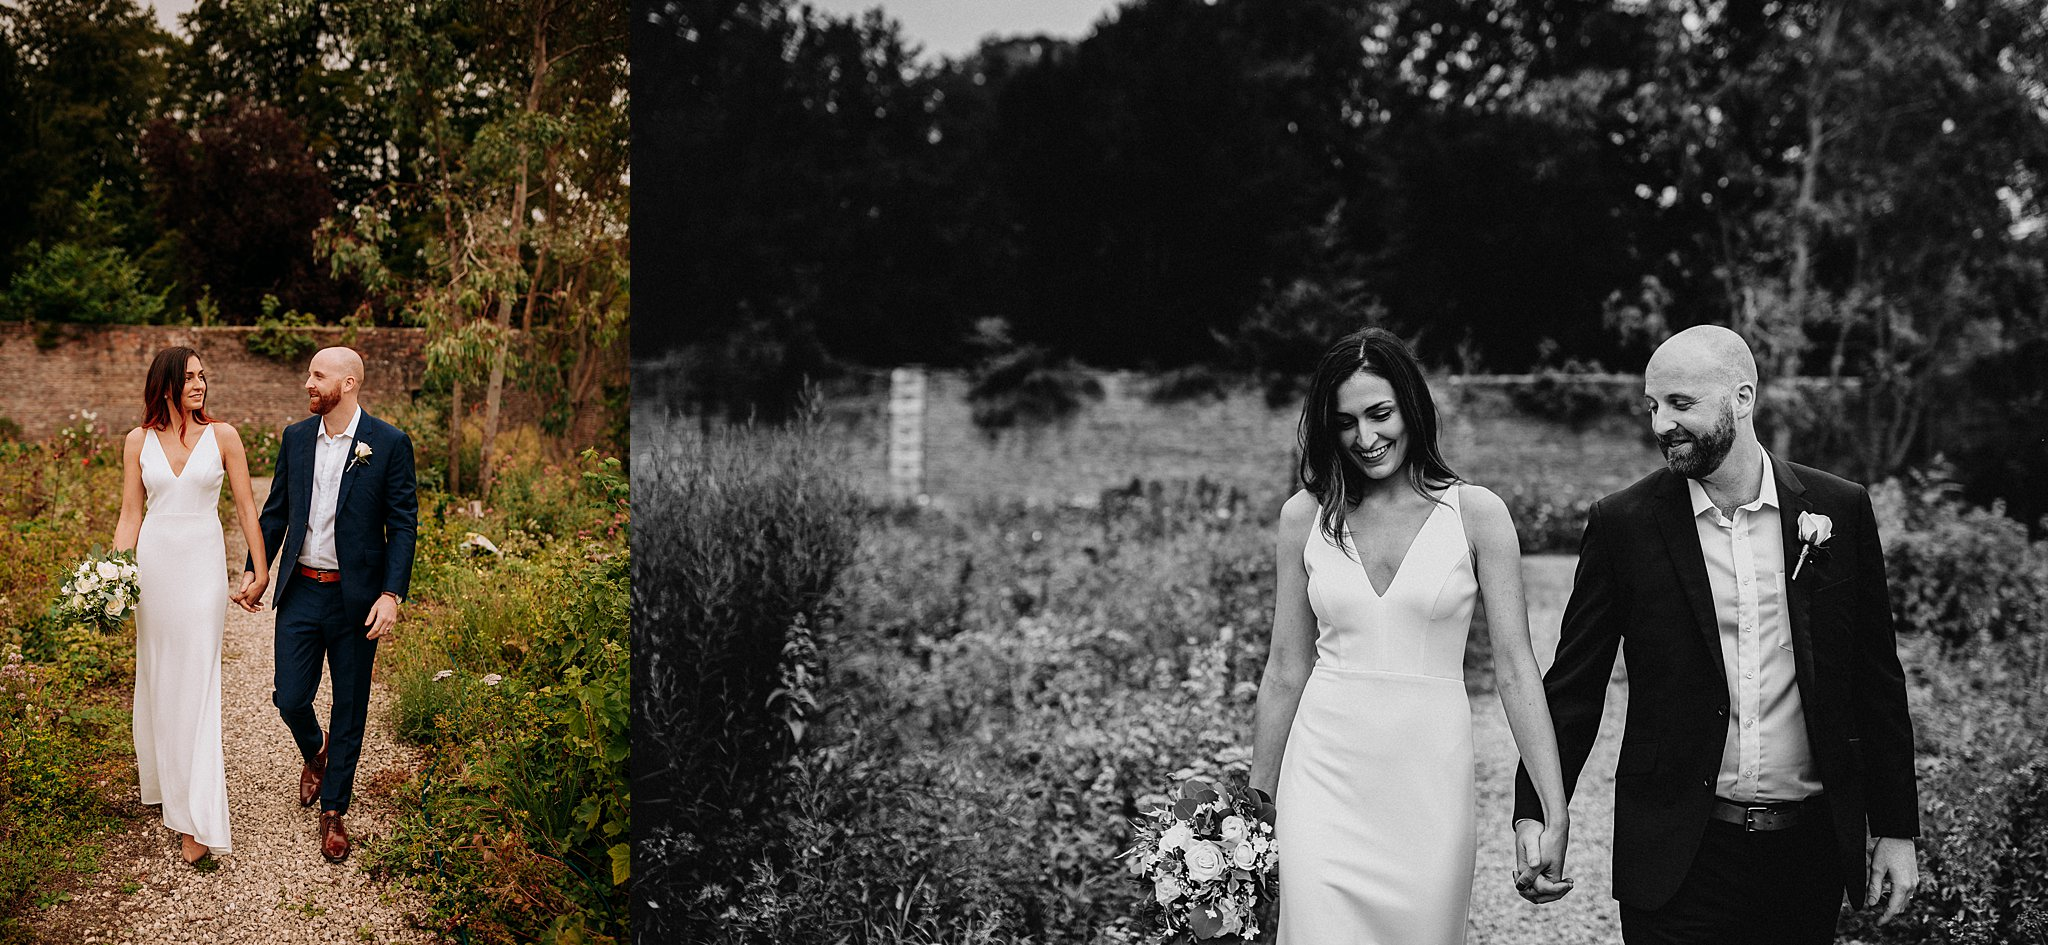 Elopement Wedding Photographer Yorkshire